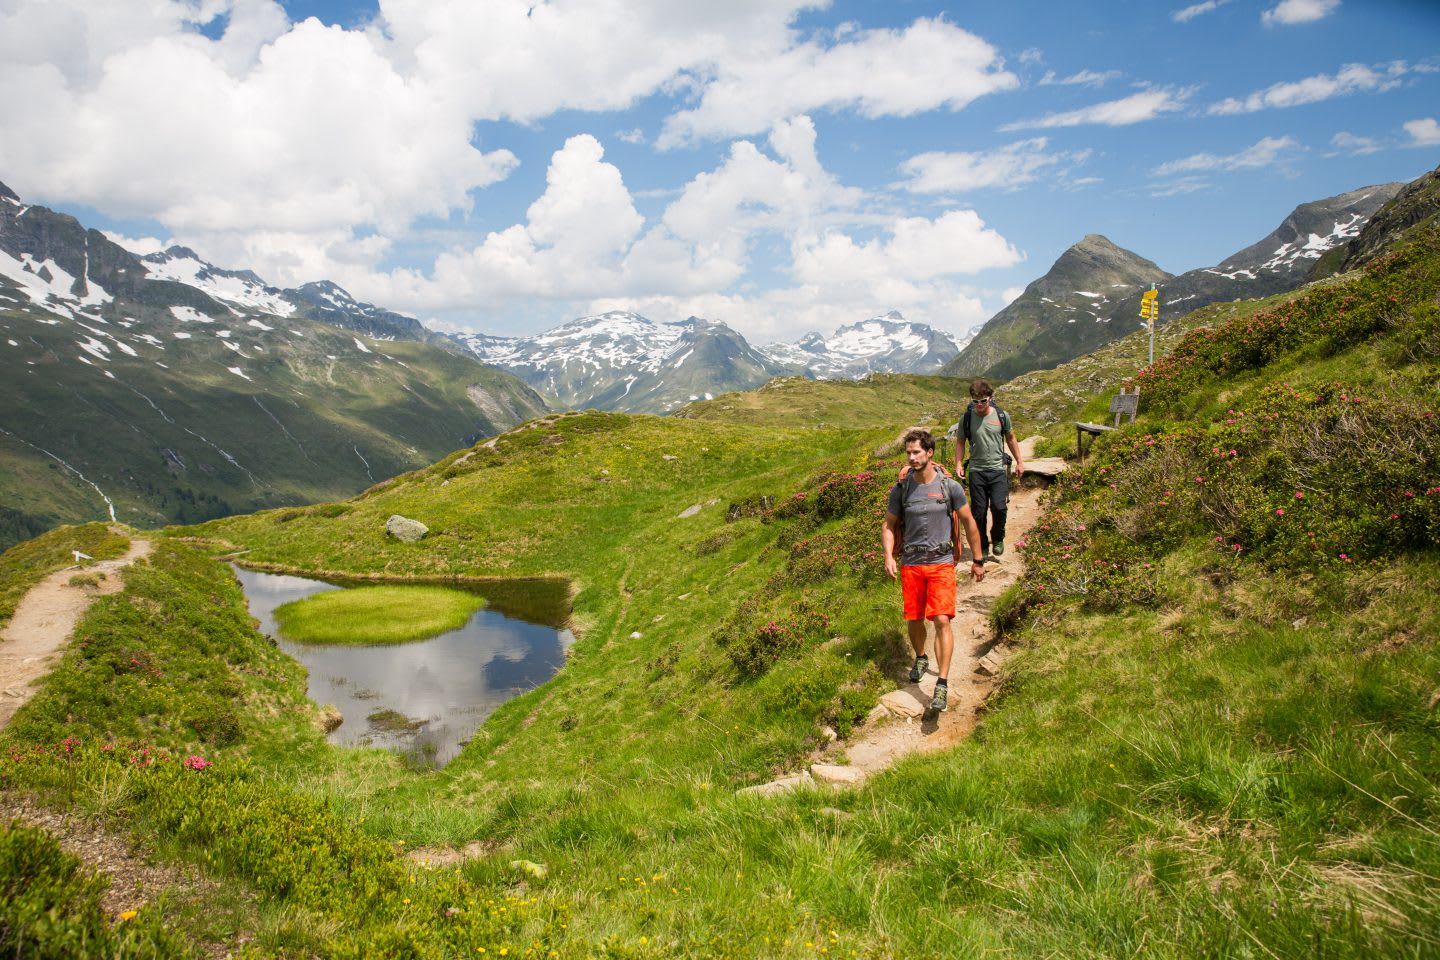 mountaineers-hiking-mountains-alps-terrex-mountain project